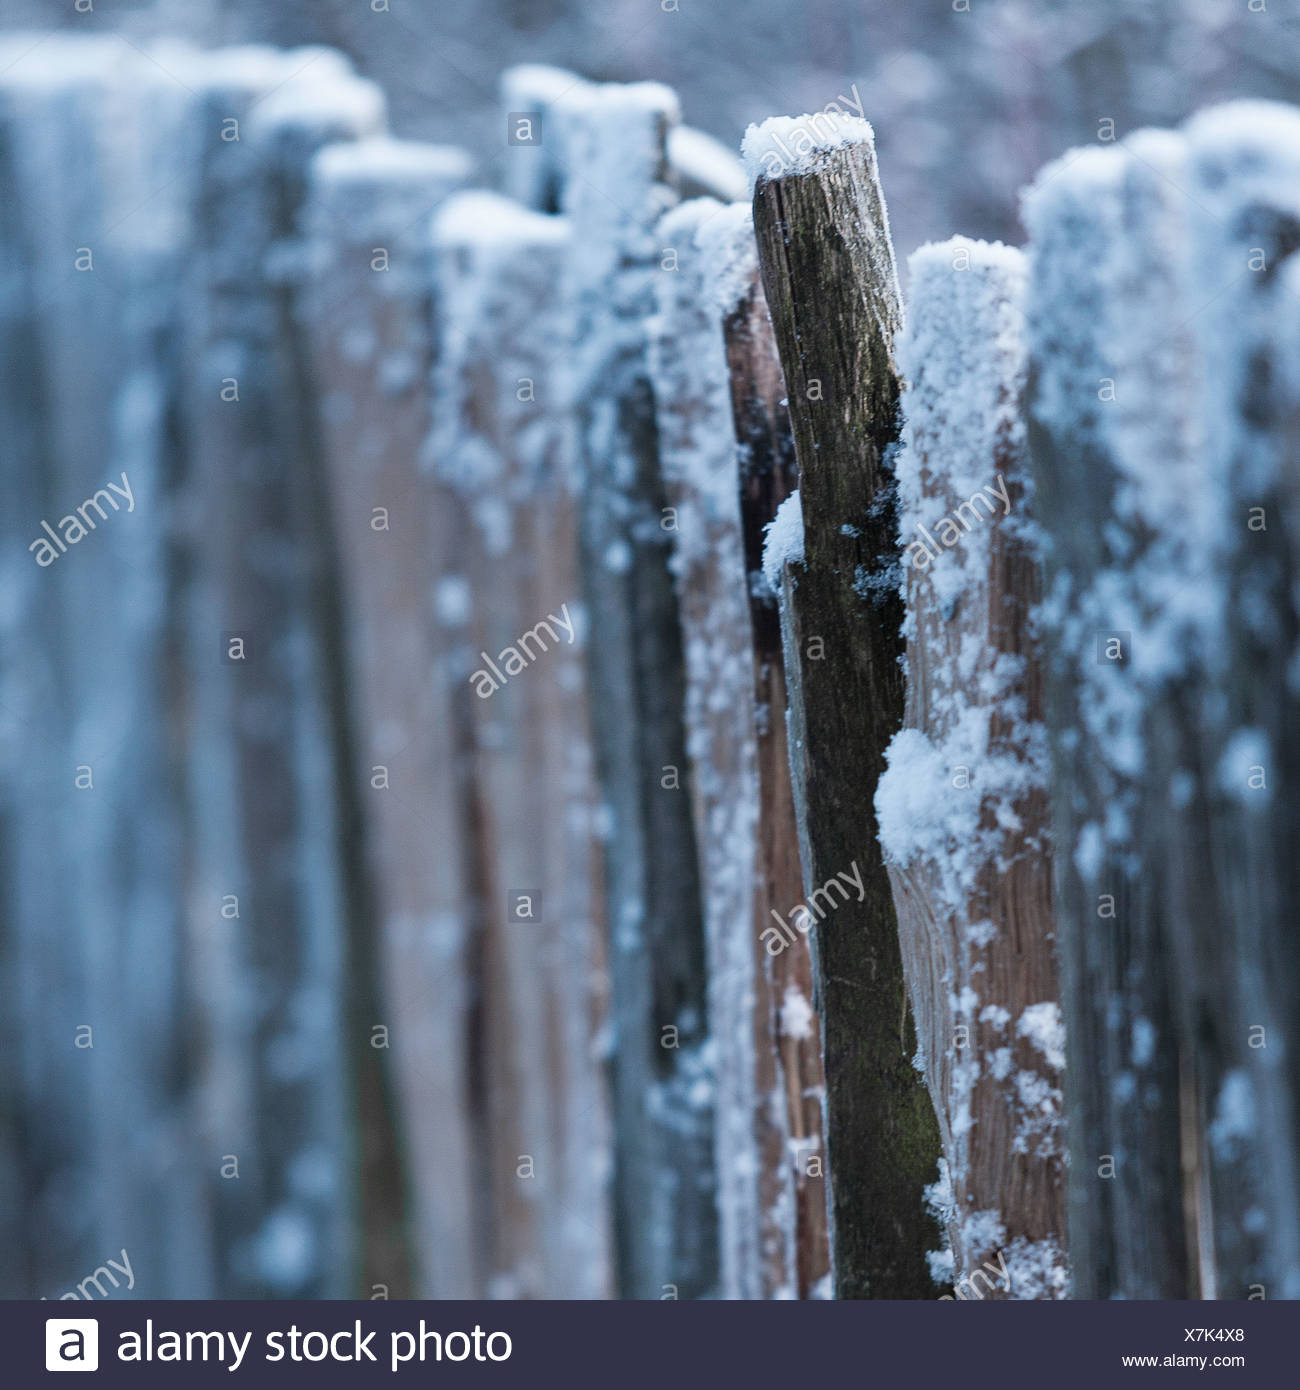 Snow covered wooden barrier - Stock Image